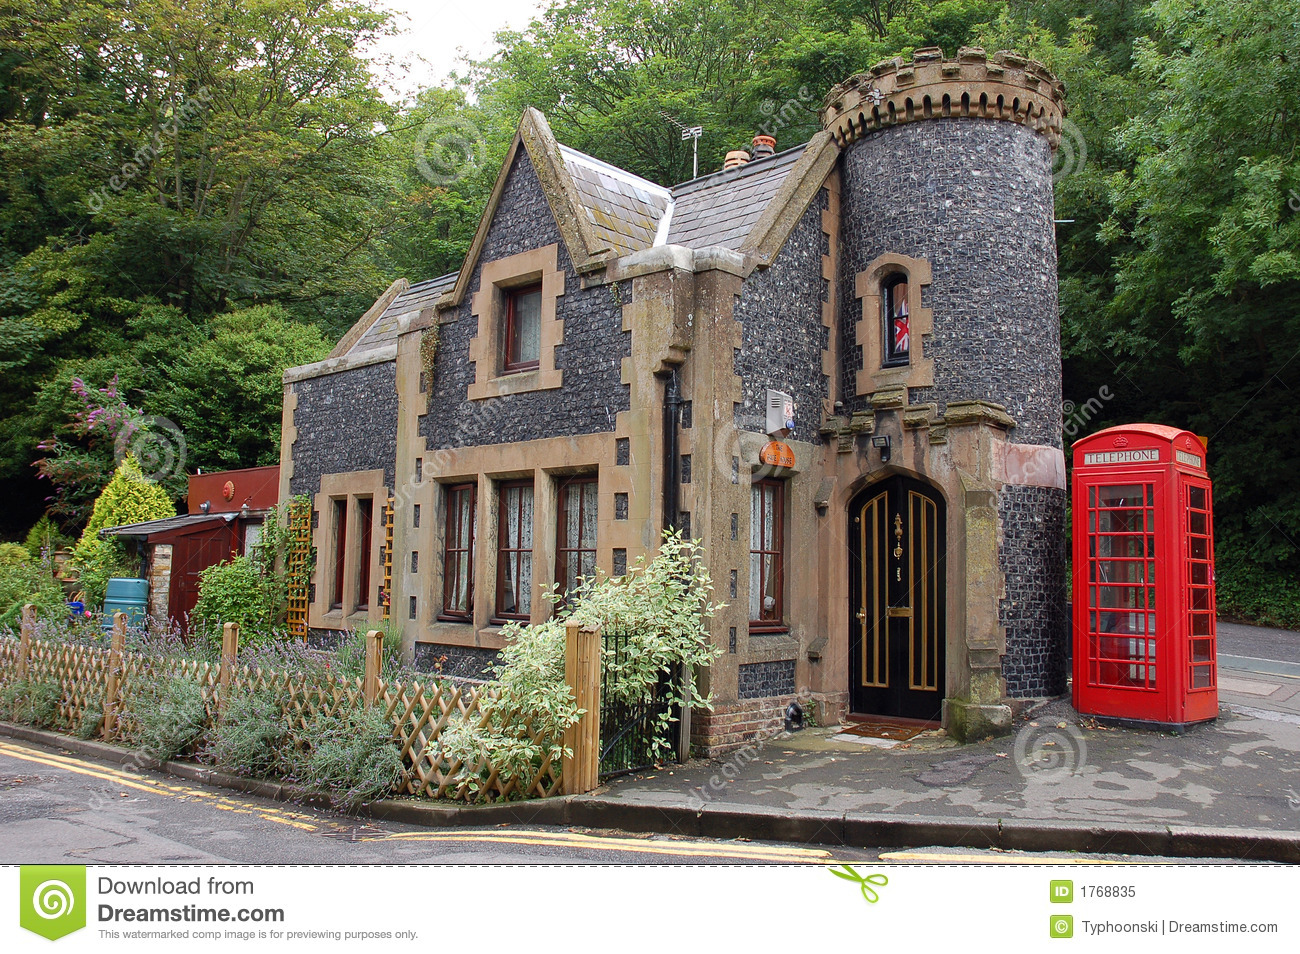 Small house in england.